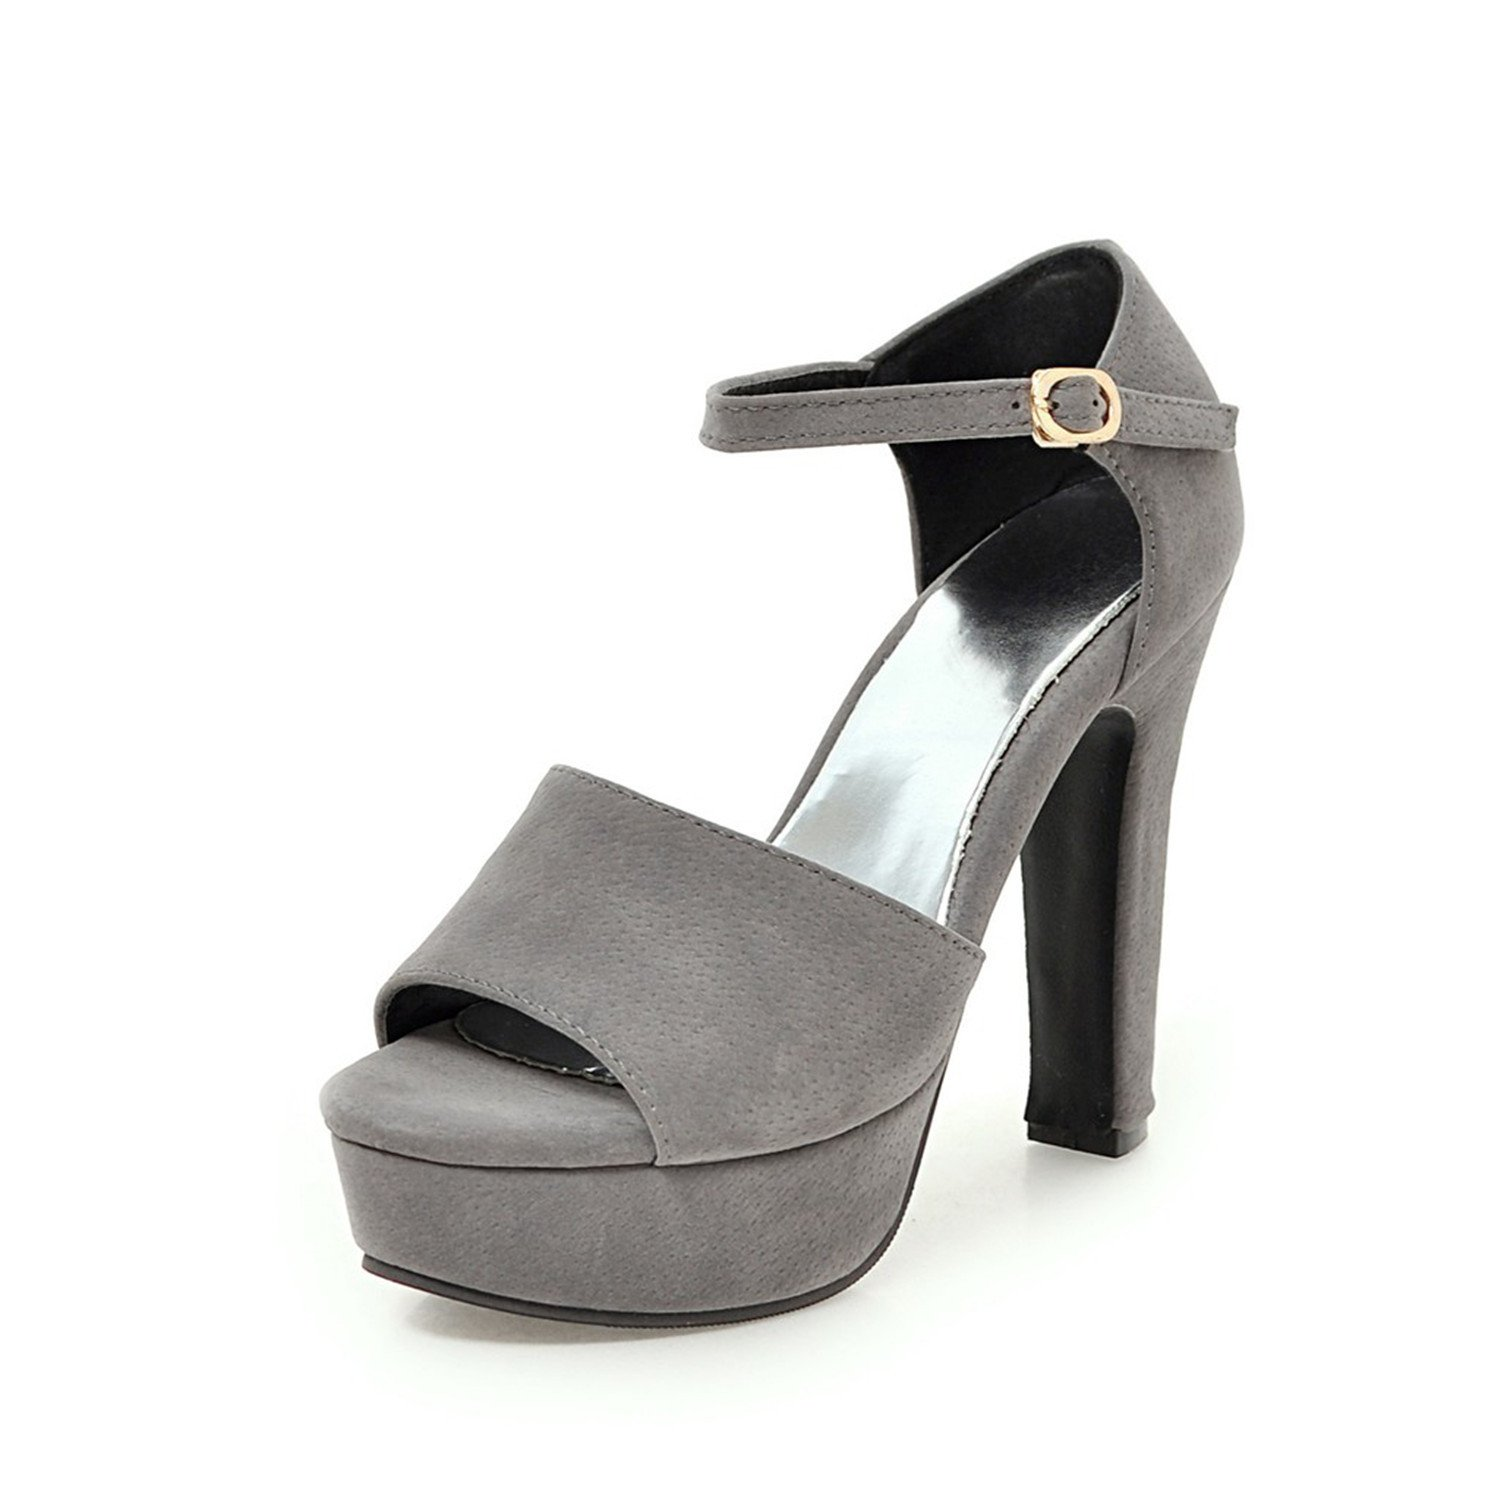 6dc497d790e33f 100FIXEO Women Sexy D Orsay Platform Sandals Peep Toe D Orsay Sexy Comfy  Chunky Heels Ankle Strappy Pumps Shoes B07D3Q7CYD 6 (B)M US